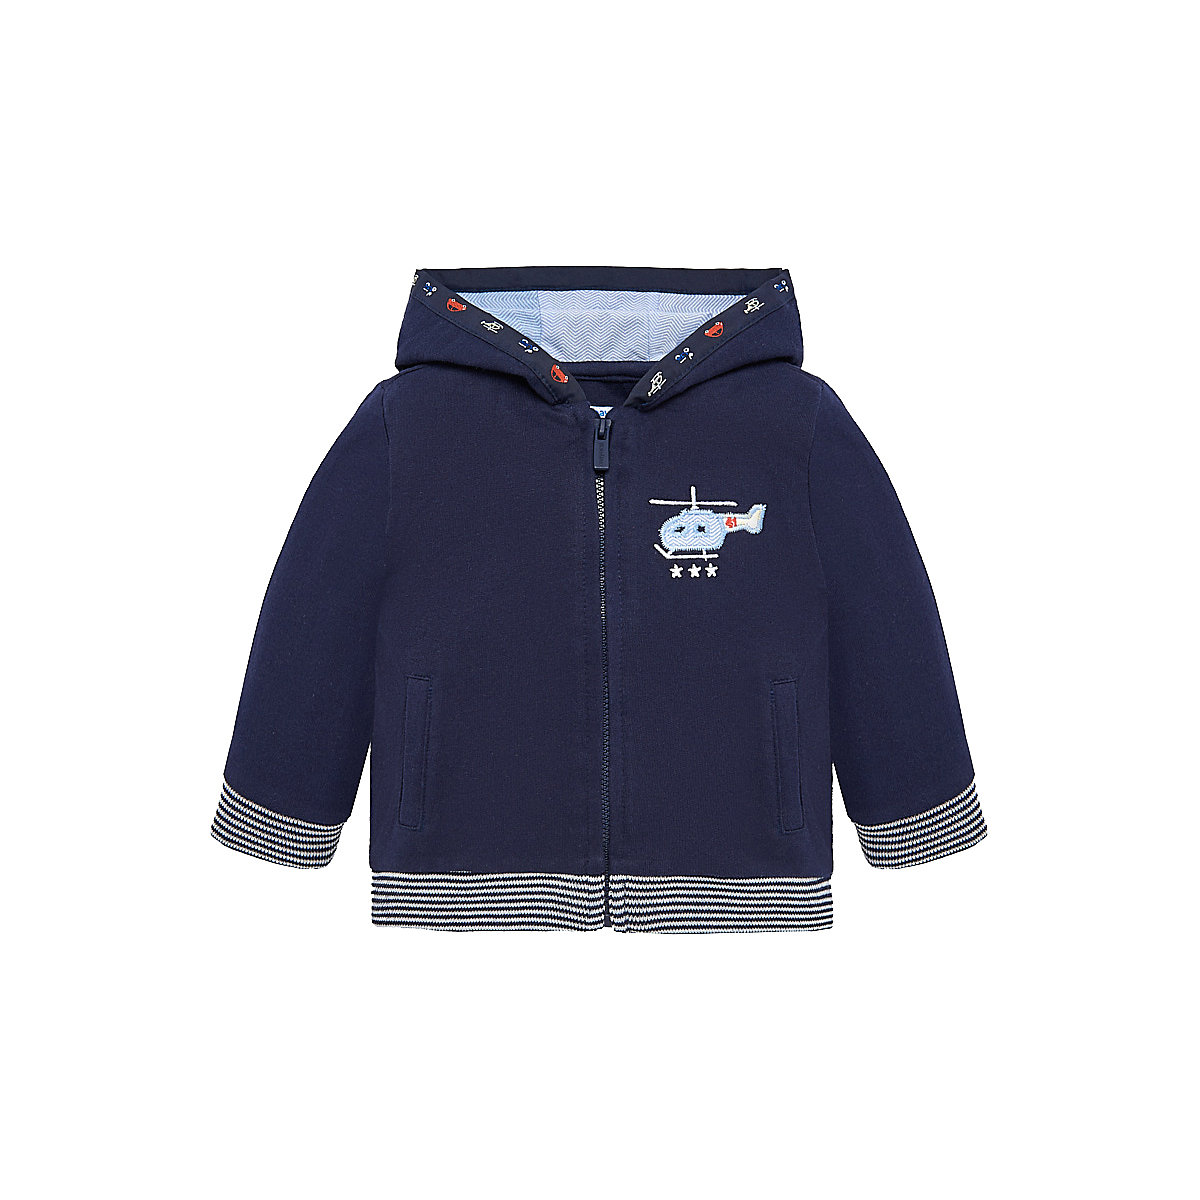 MAYORAL Hoodies & Sweatshirts 10685142 pullover jumper for boys and girls clothes children's sweatshirt Polyester Boys